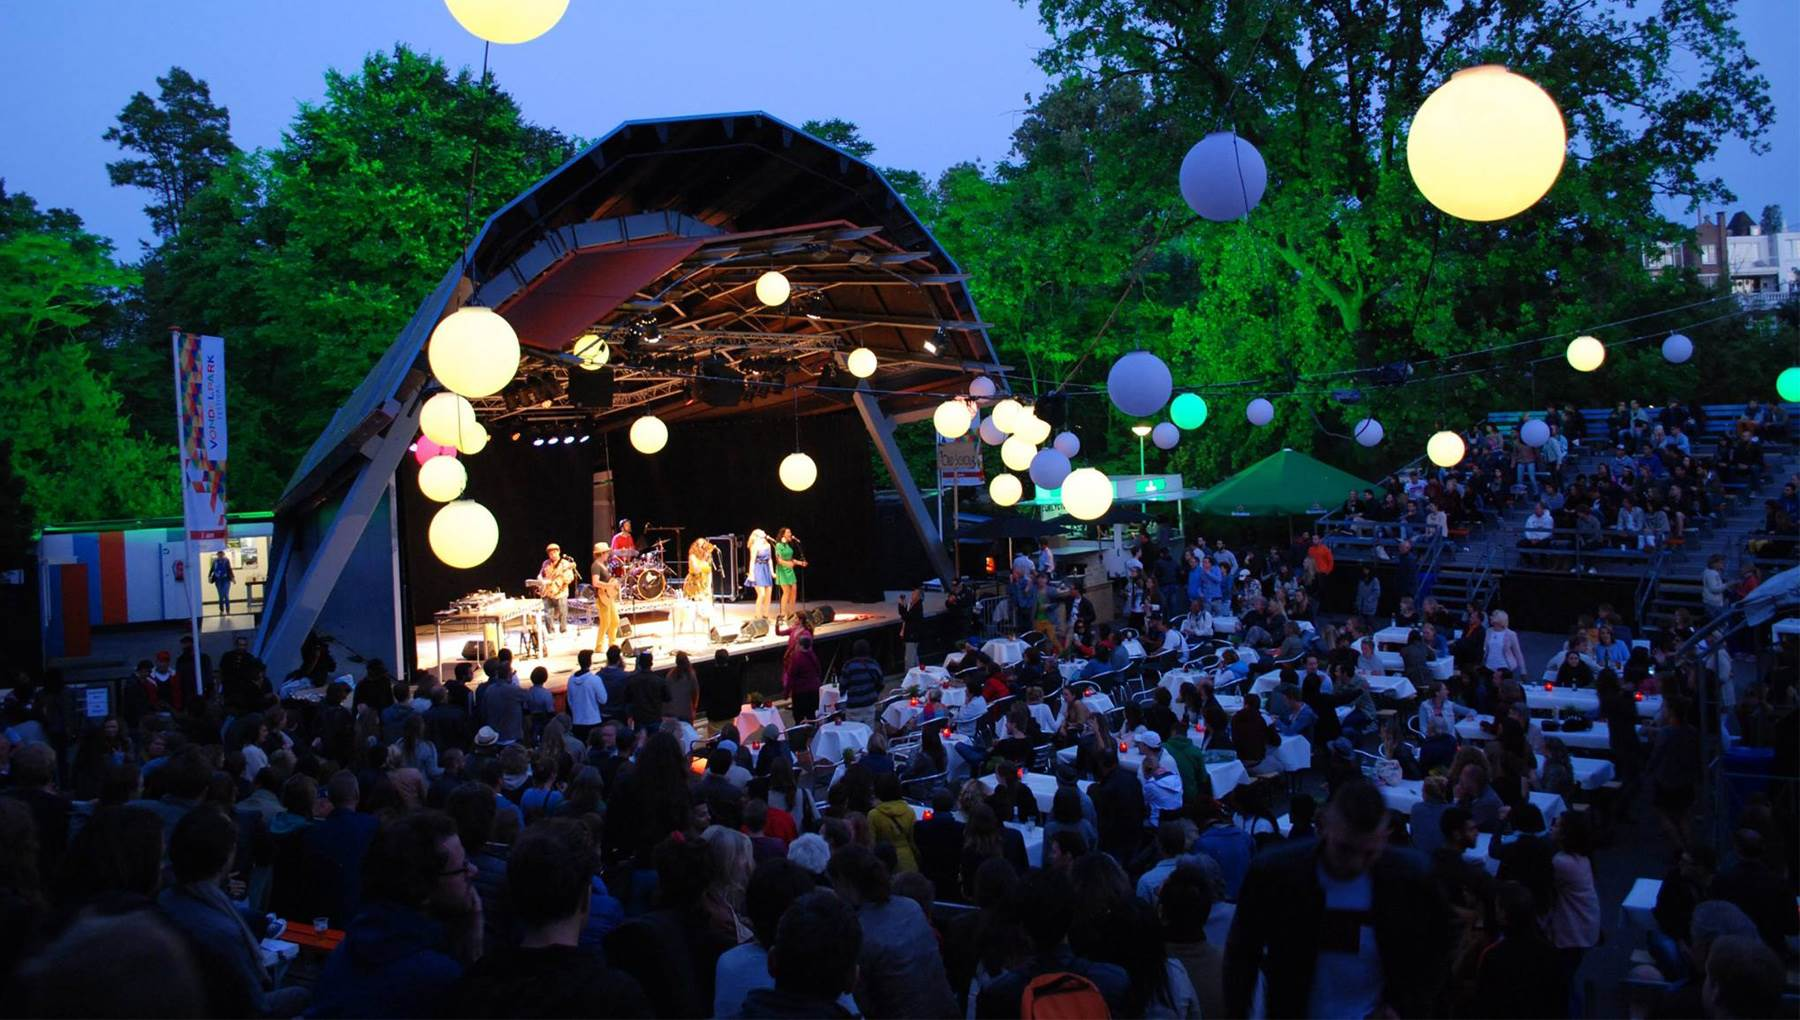 Vondelpark Open Air Theatre